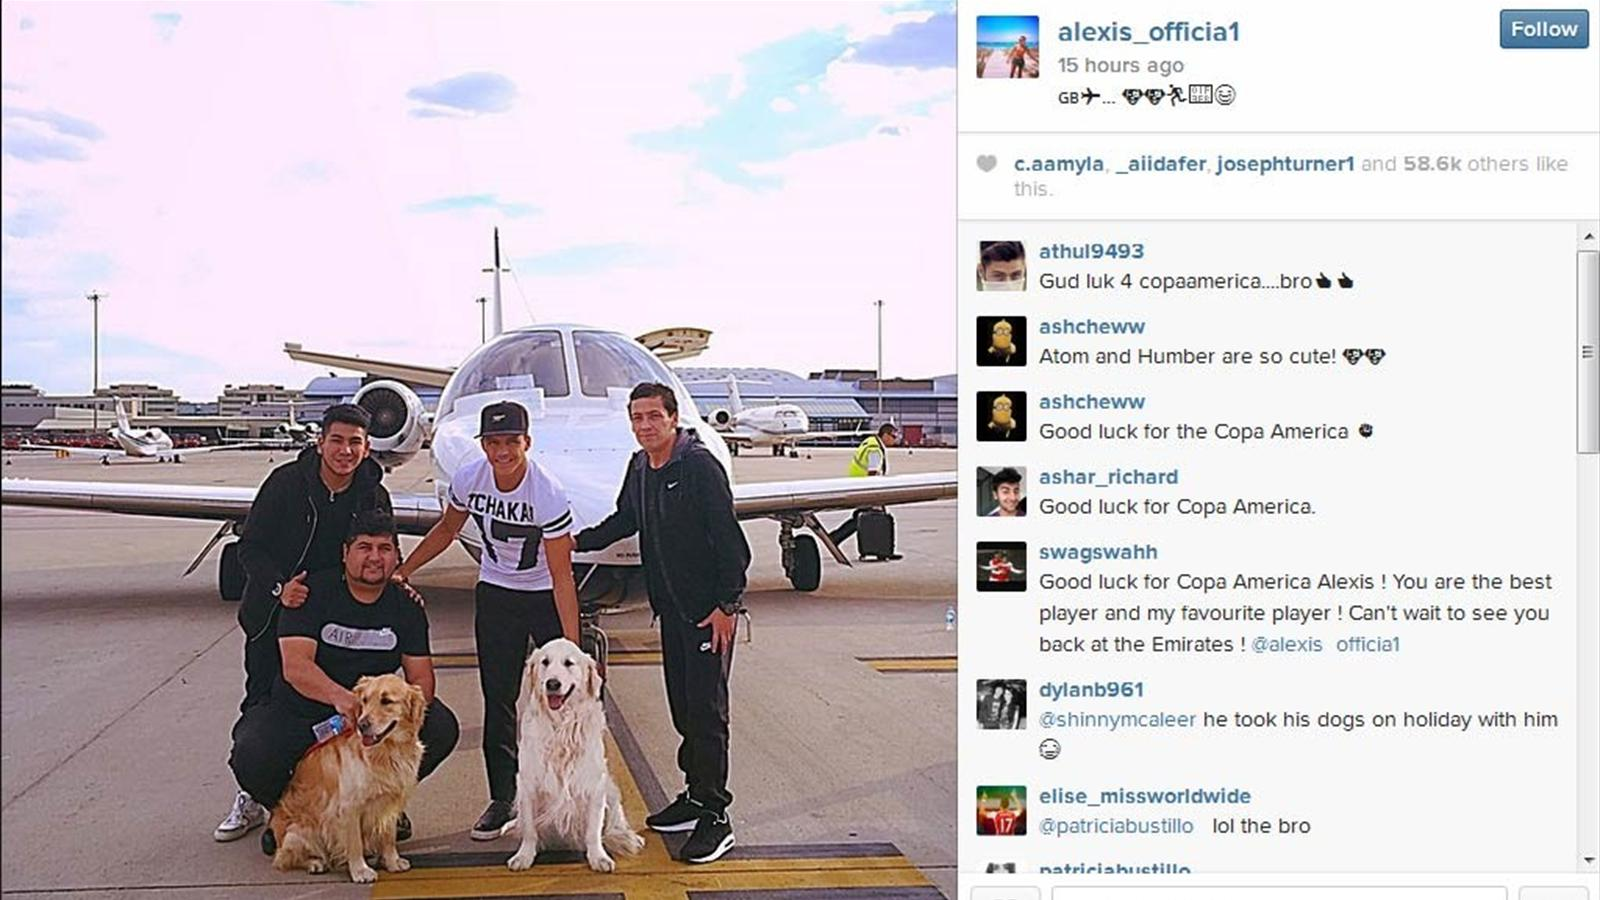 Alexis Sanchez poses with his dogs and friends by his private jet (Instagram)